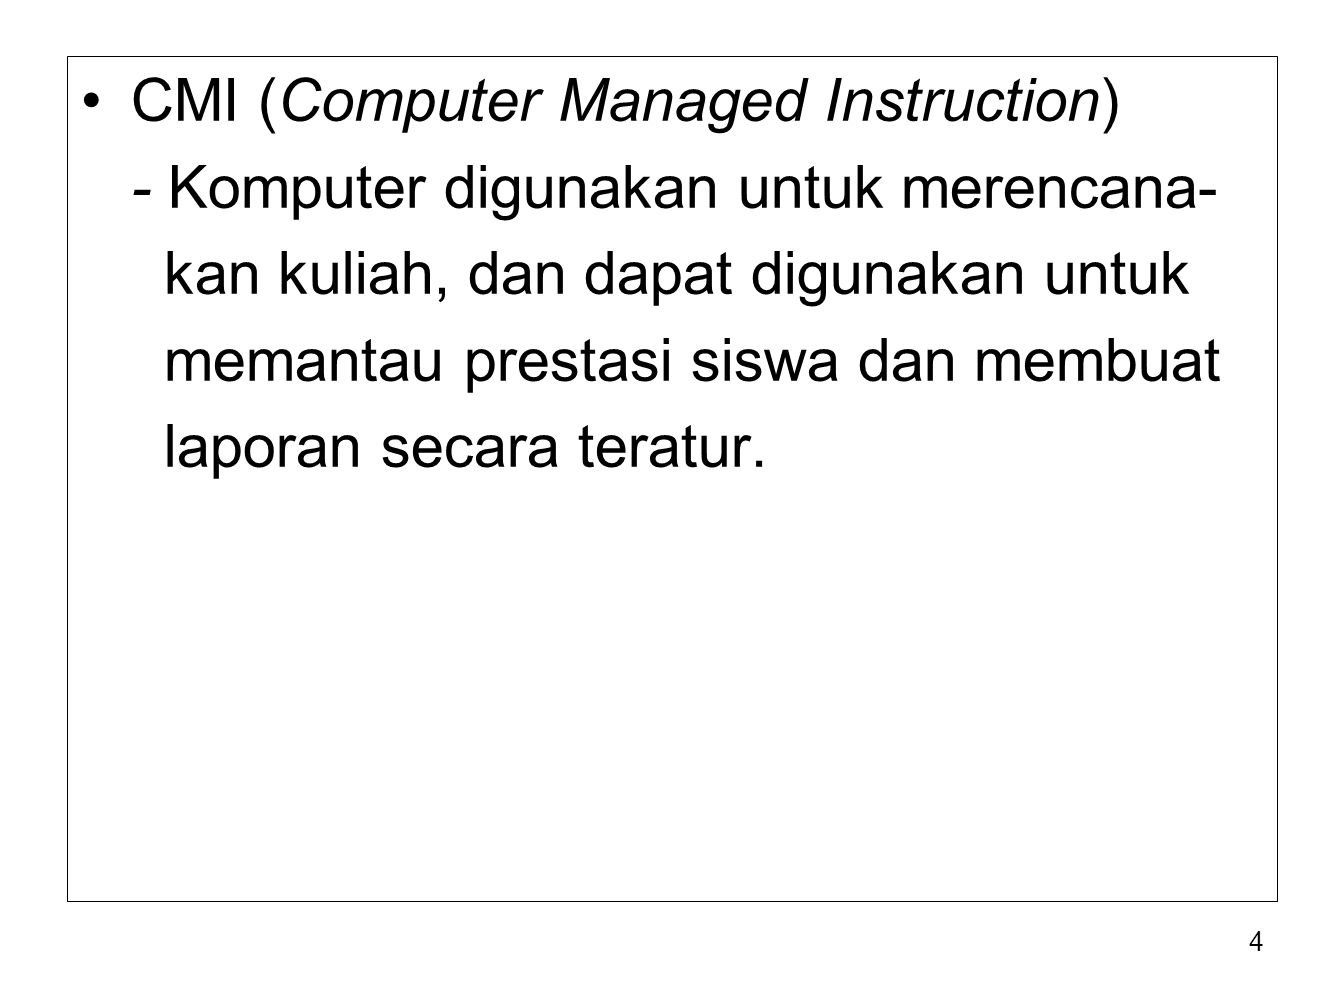 CMI (Computer Managed Instruction)